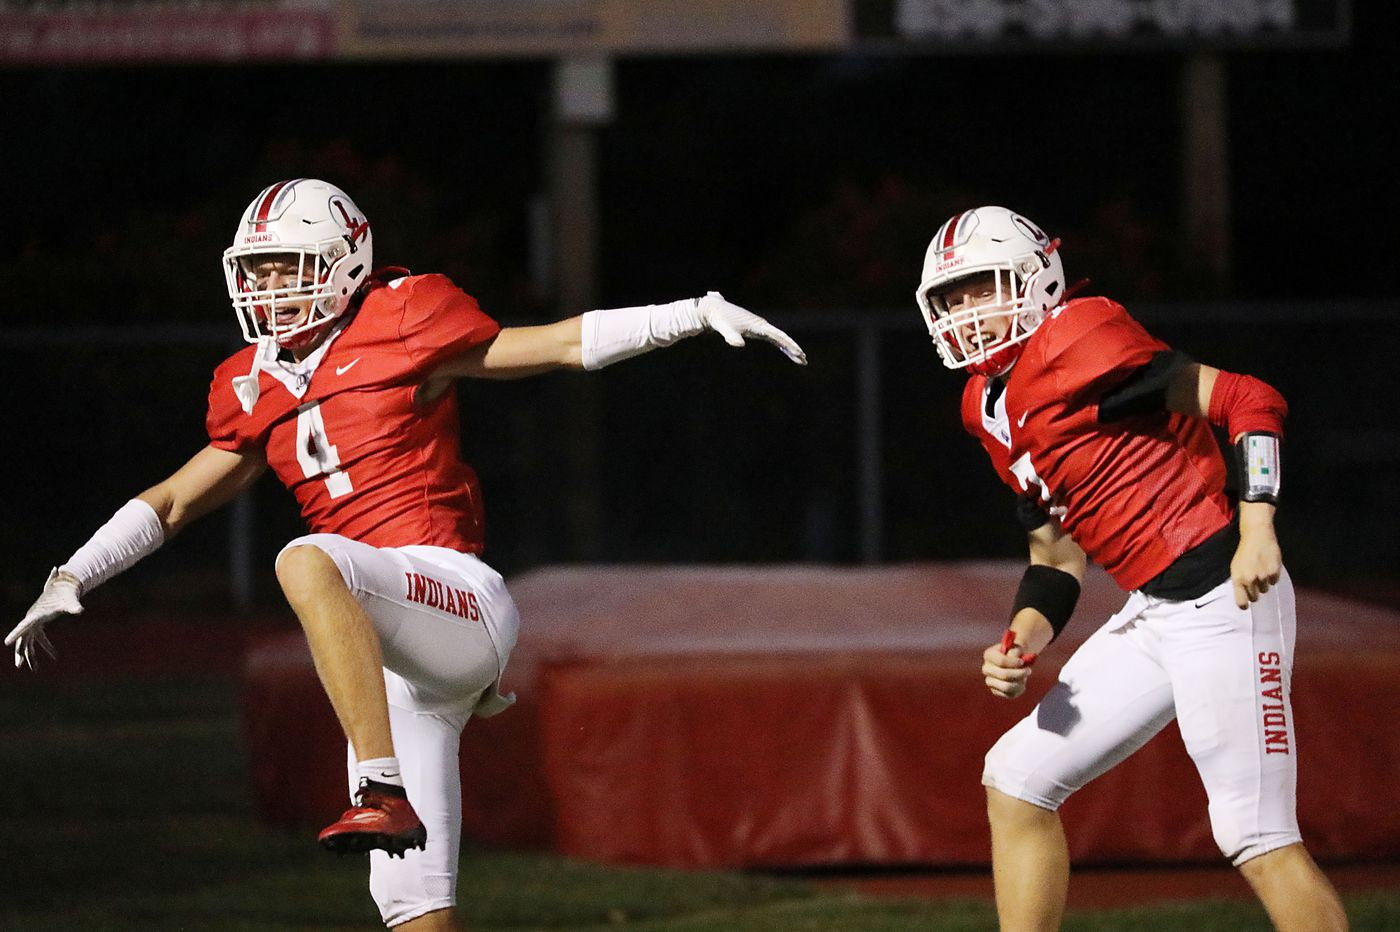 Connor Kennedy helps Lenape roll over St. Augustine, 20-7